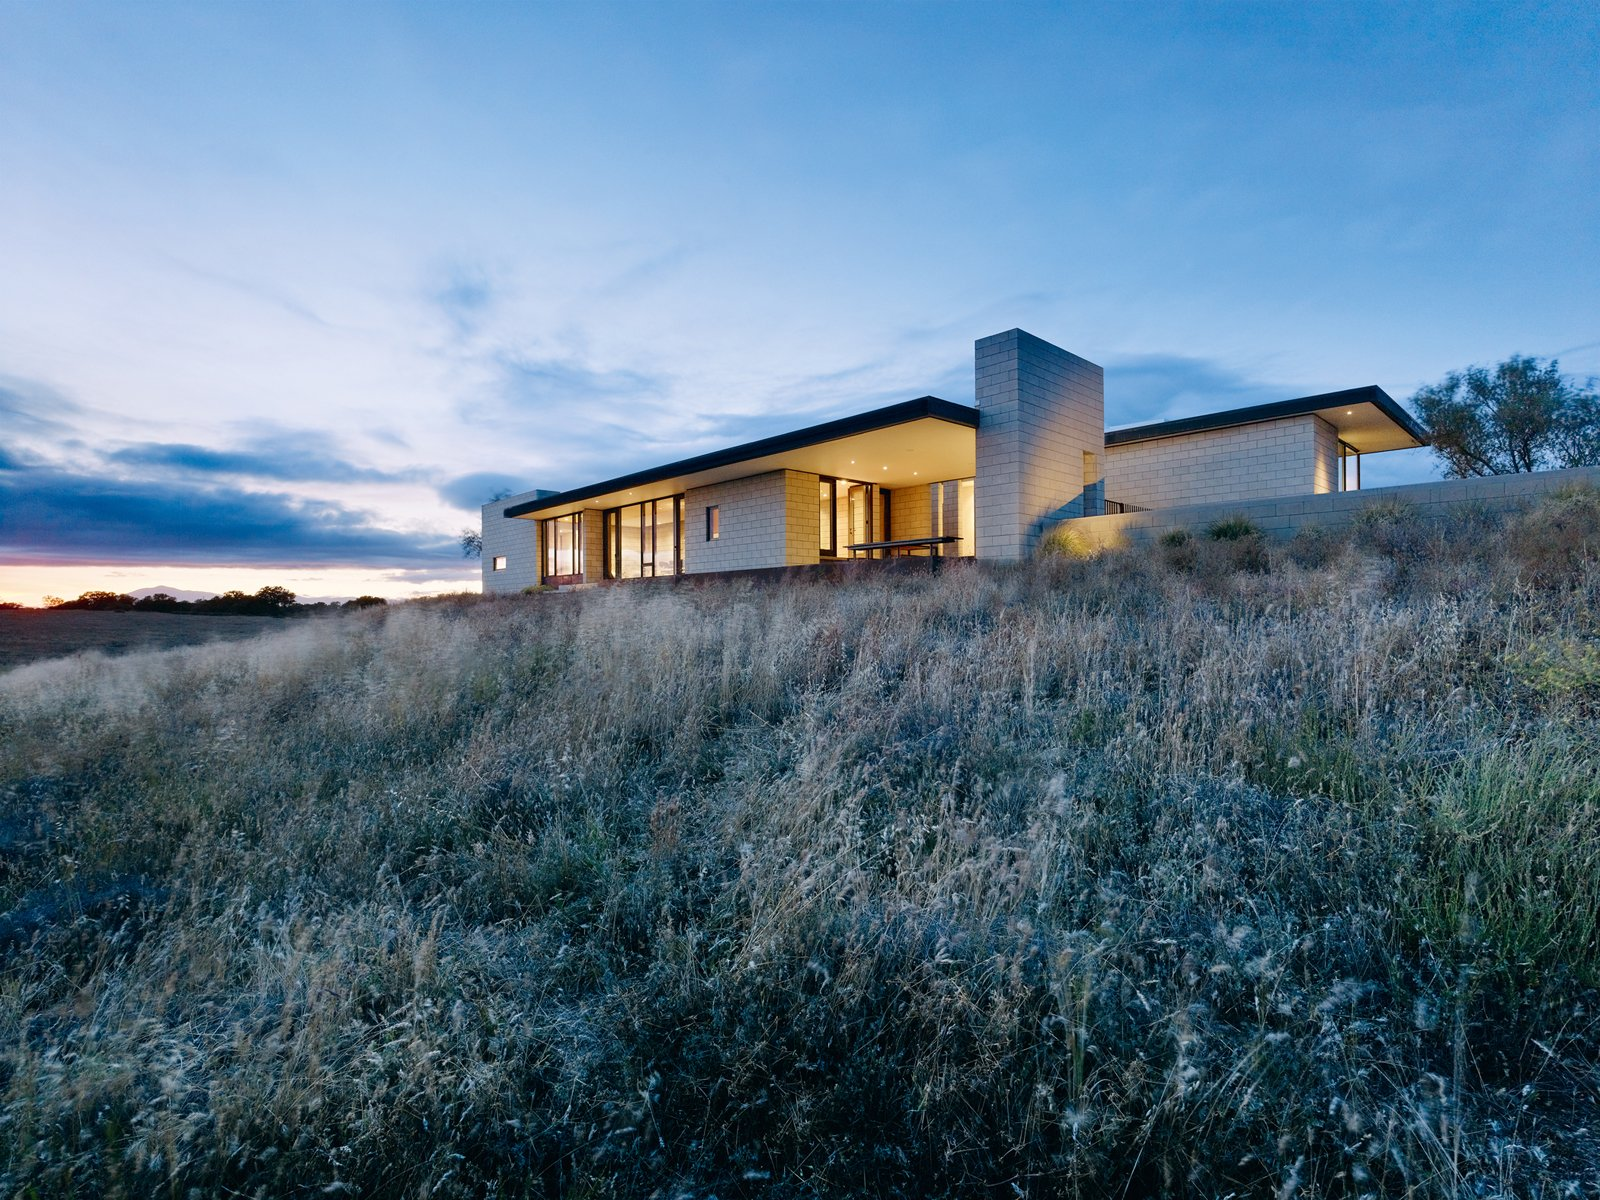 Photograph by Matthew Millman from West Coast Modern by Zahid Sardar, reprint permission by Gibbs Smith Publisher. Tagged: Exterior, Brick Siding Material, and House.  Photo 2 of 5 in 'West Coast Modern' by Zahid Sardar